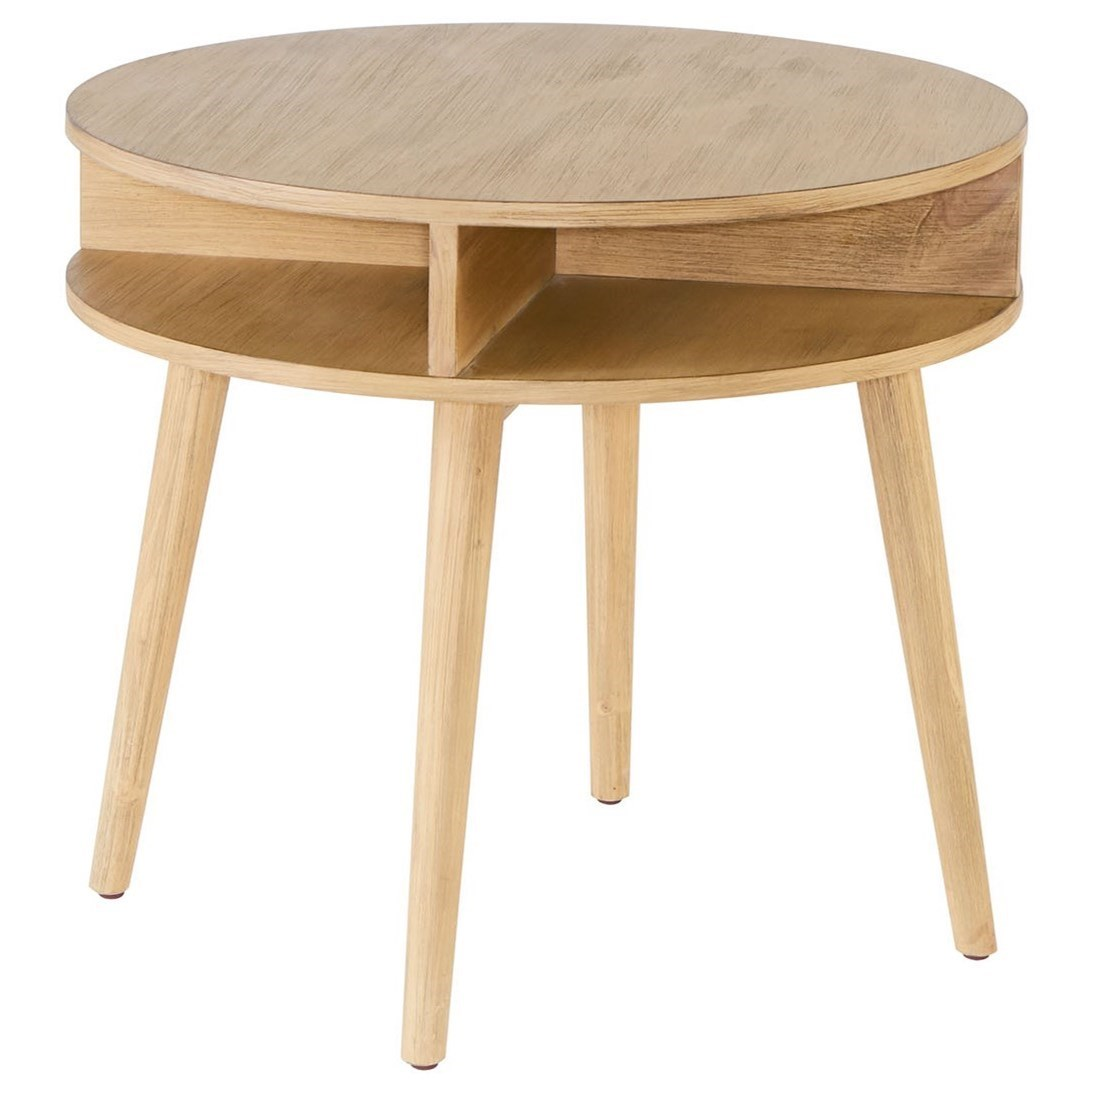 Magnolia Home By Joanna Gaines ModernRound Side Table ...